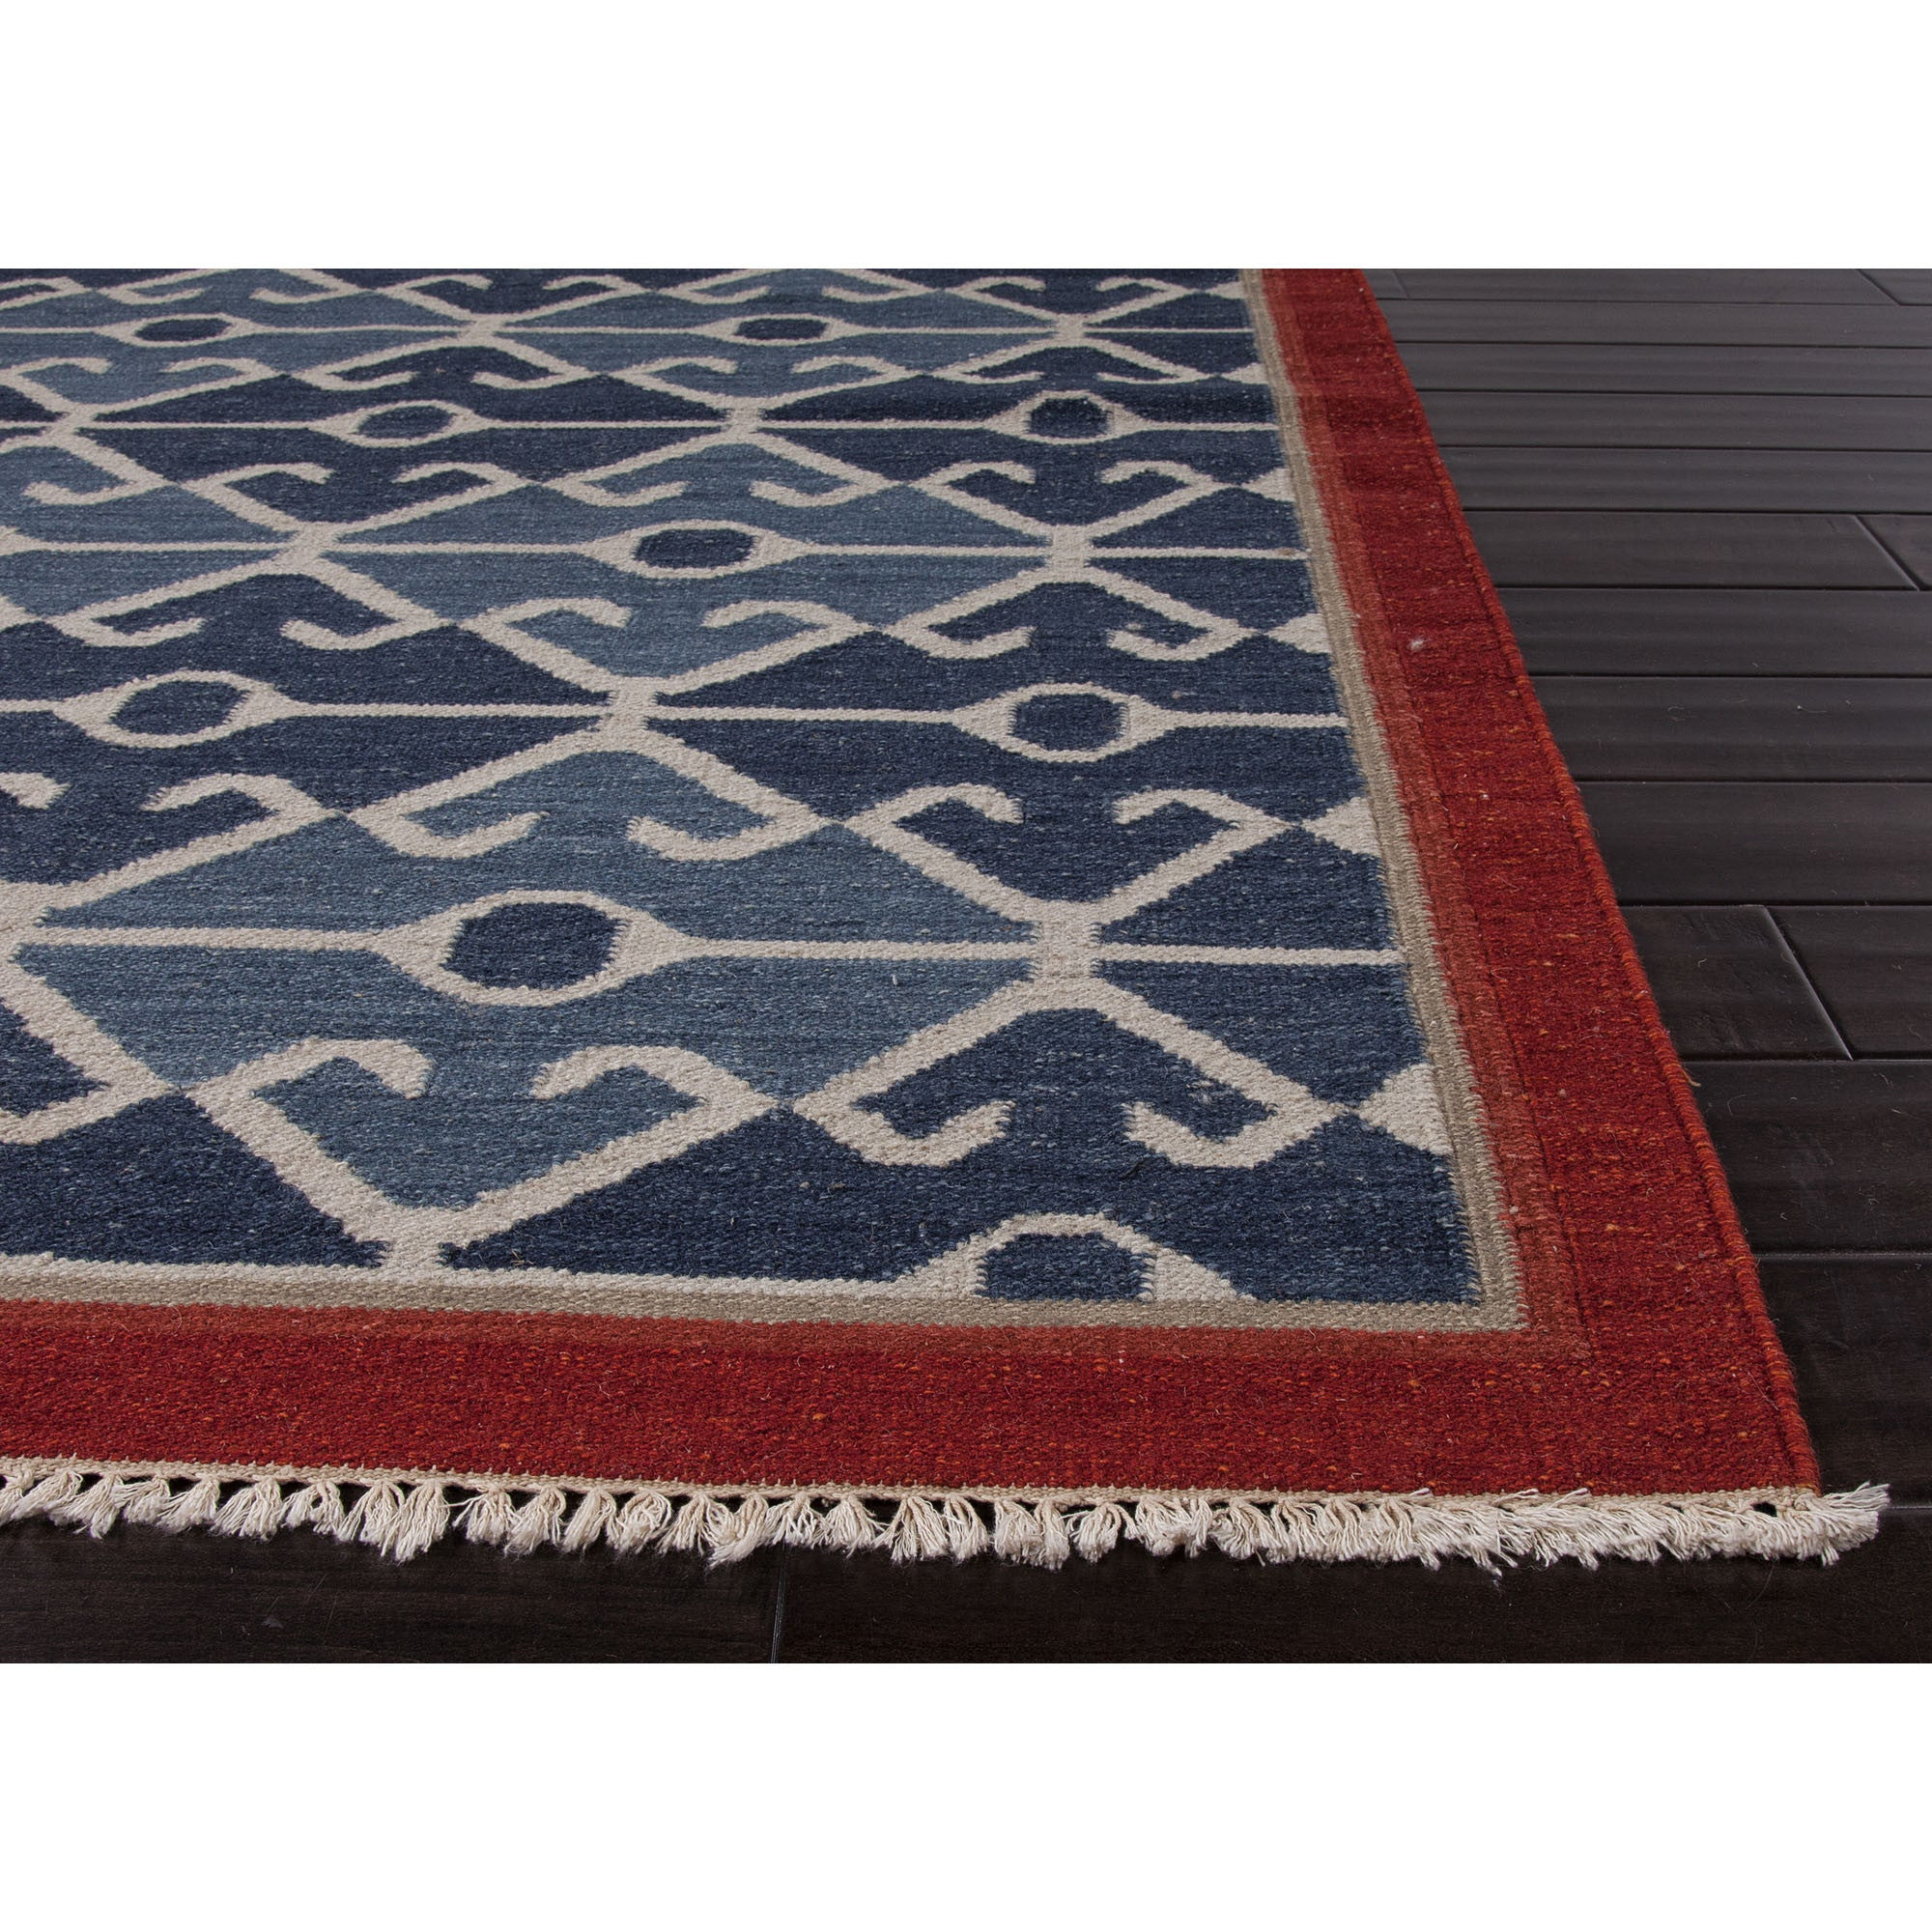 Jaipur Rugs Flatweave Tribal Pattern Blue Red Wool Area